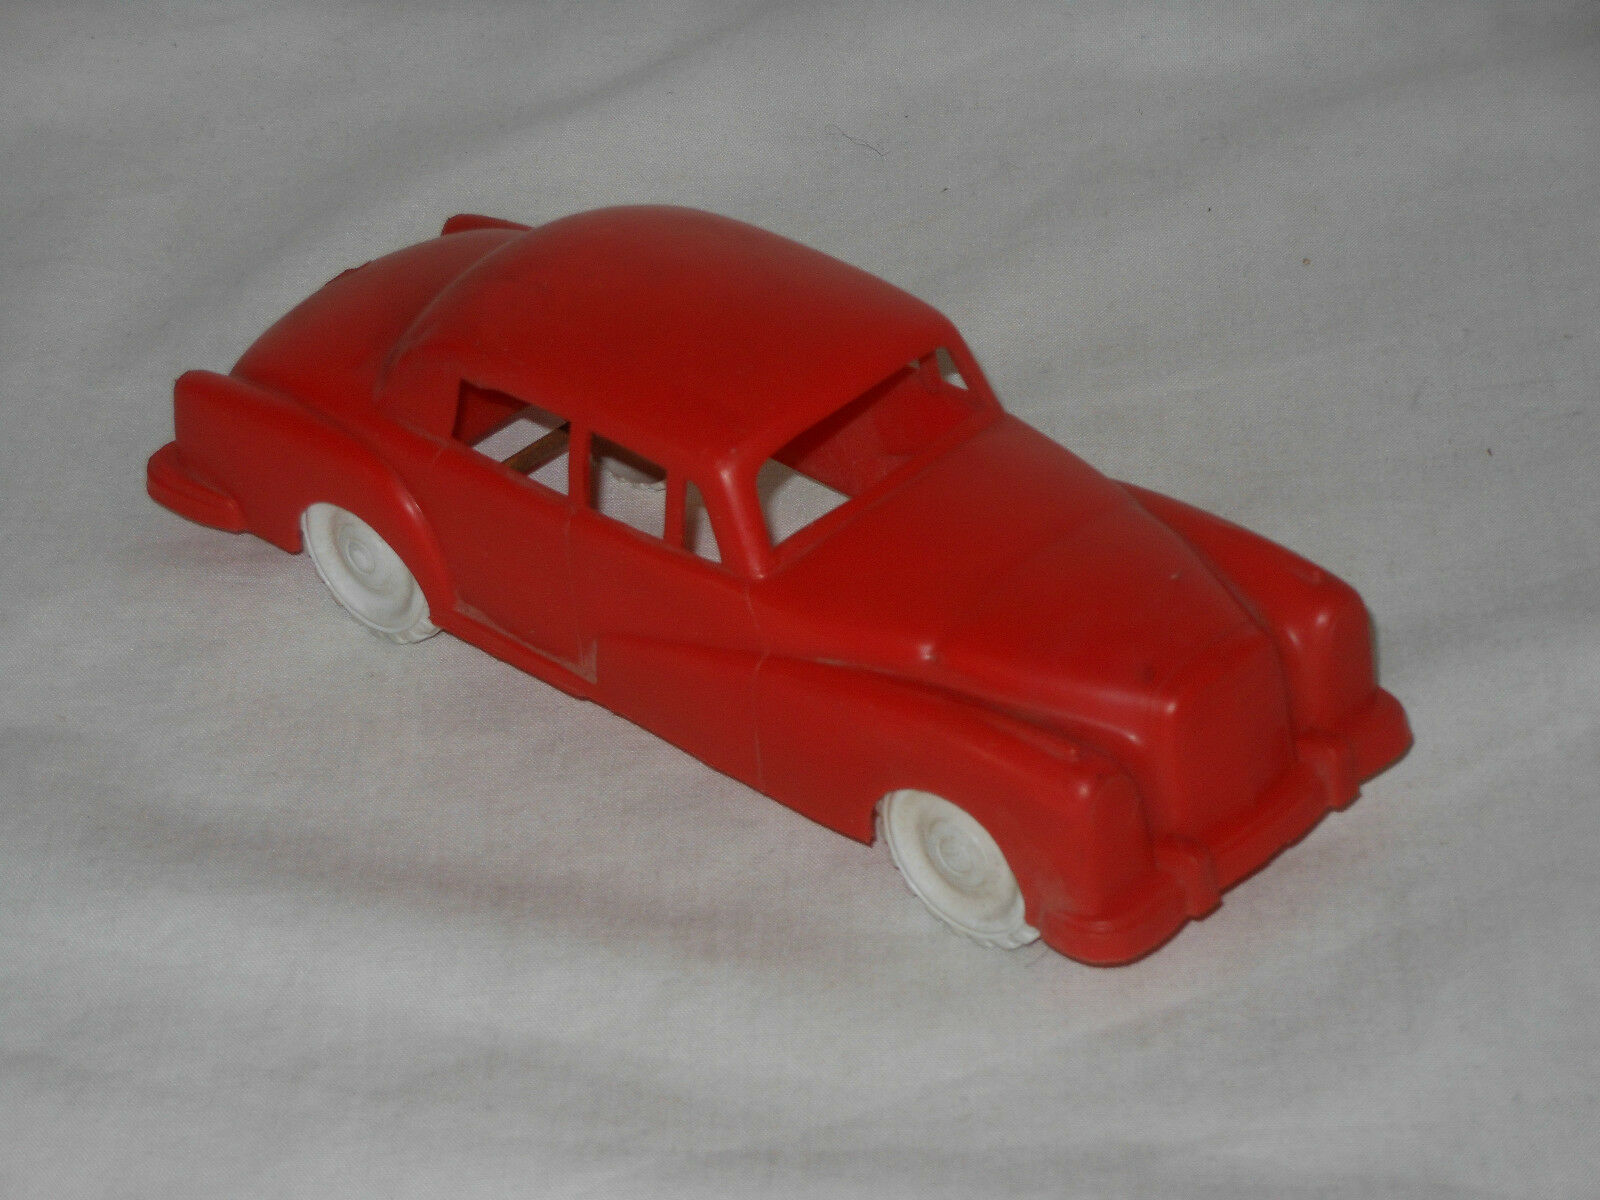 Vintage Toy Car - Mercedes-Benz - 20 20 20 cm - Made in Germany - 50èr Years 82e000